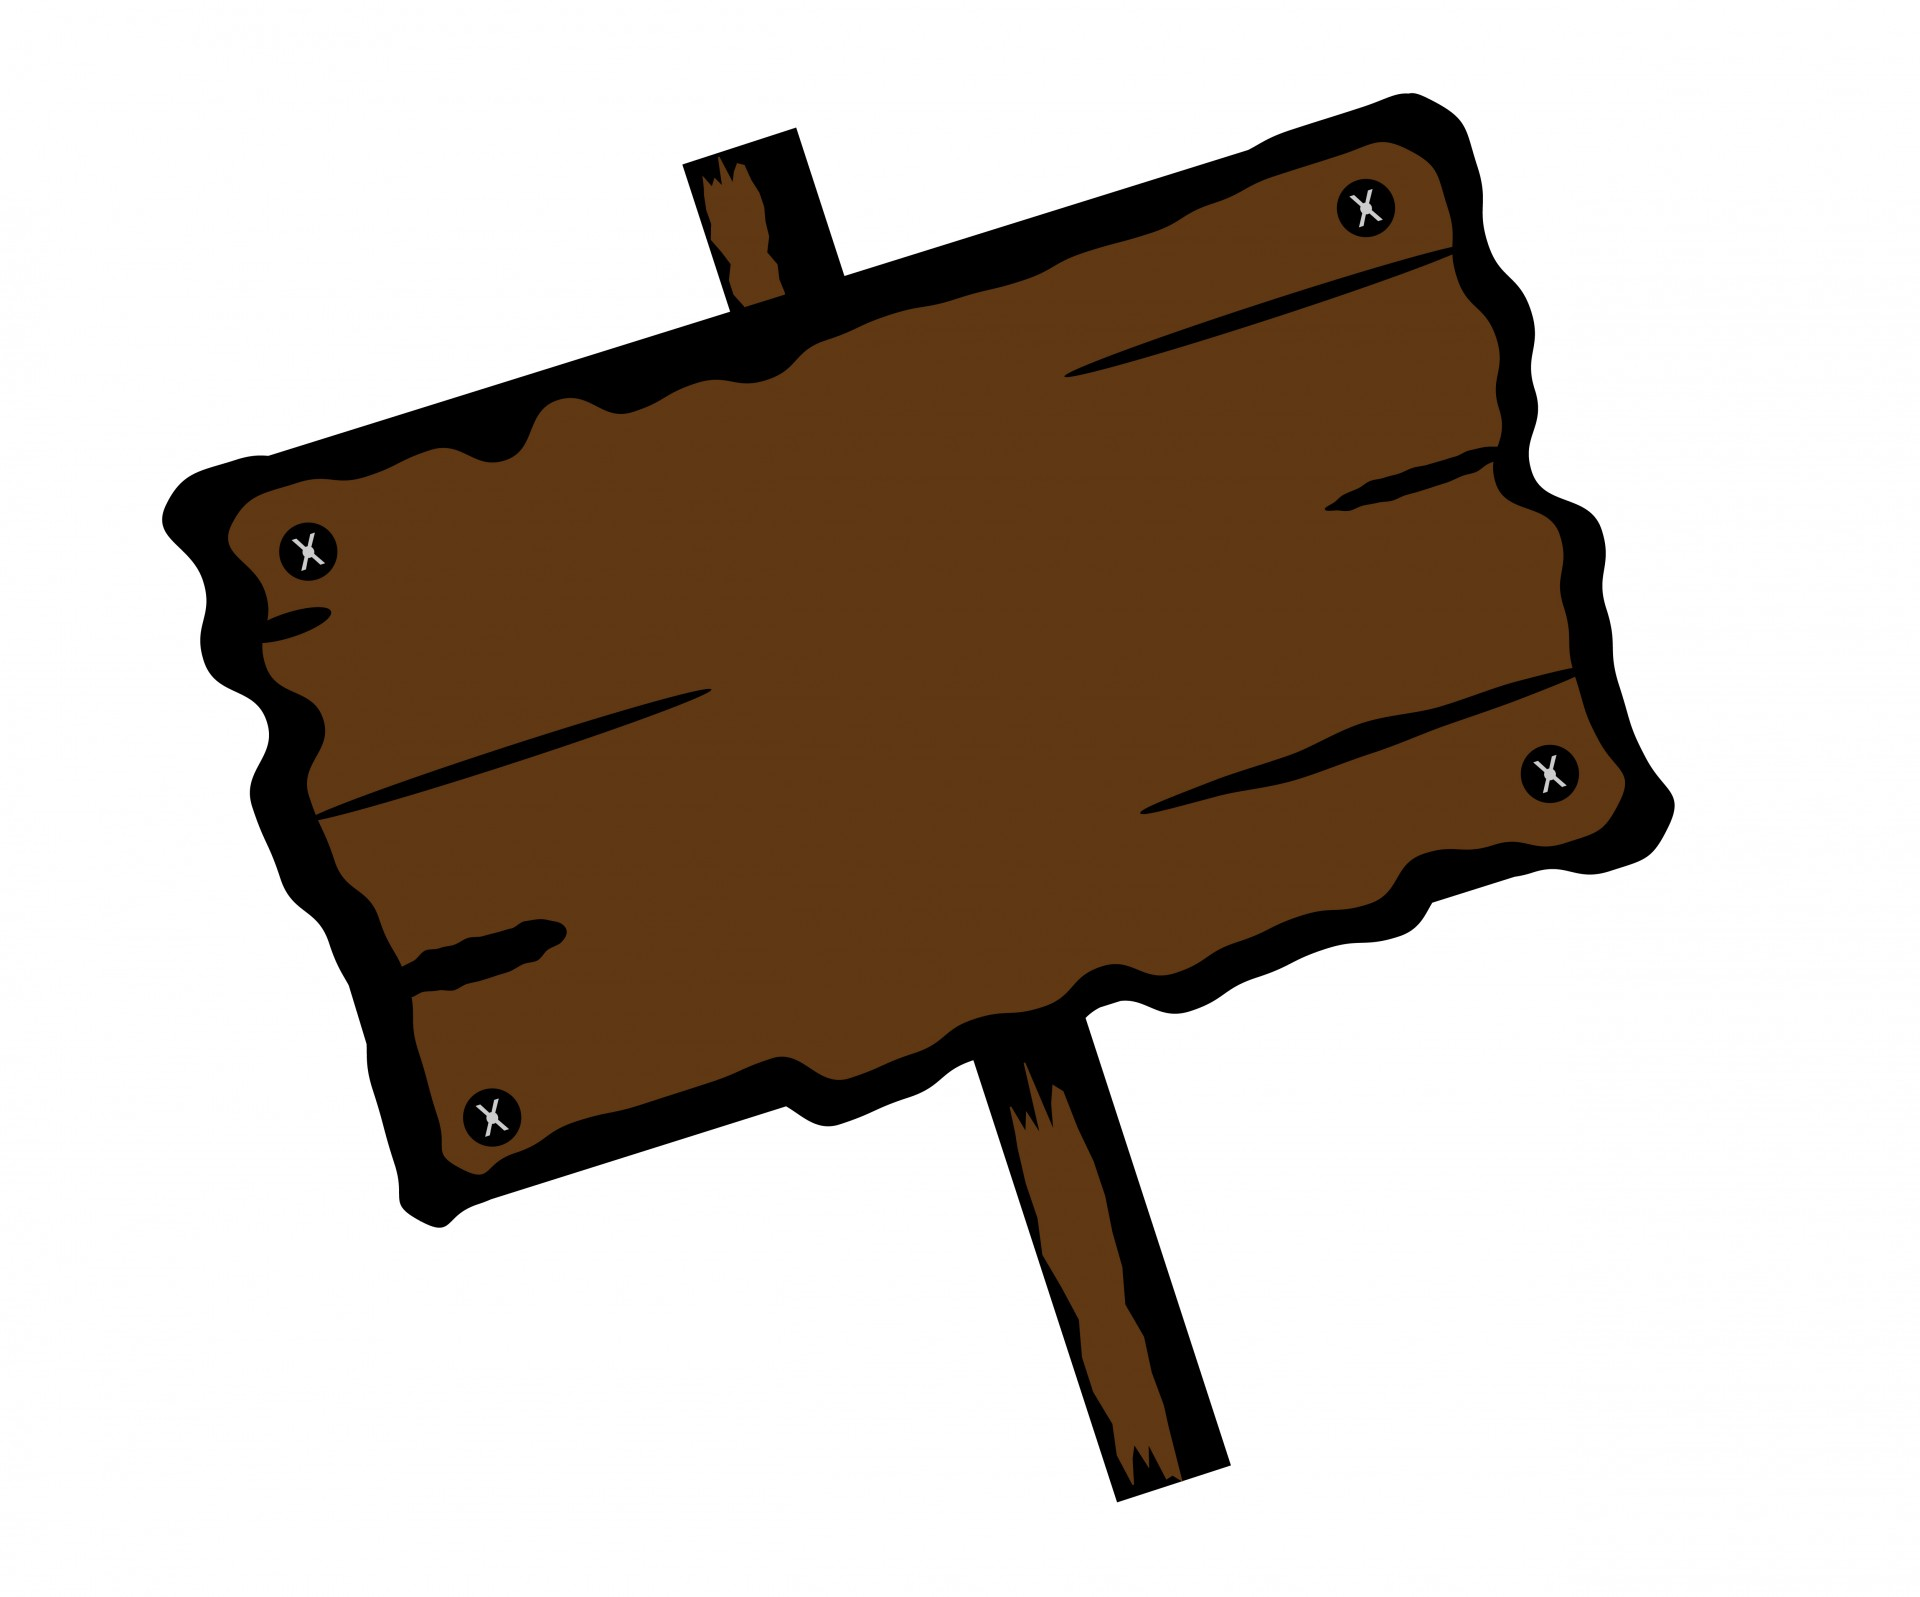 wood log clipart | free download best wood log clipart on